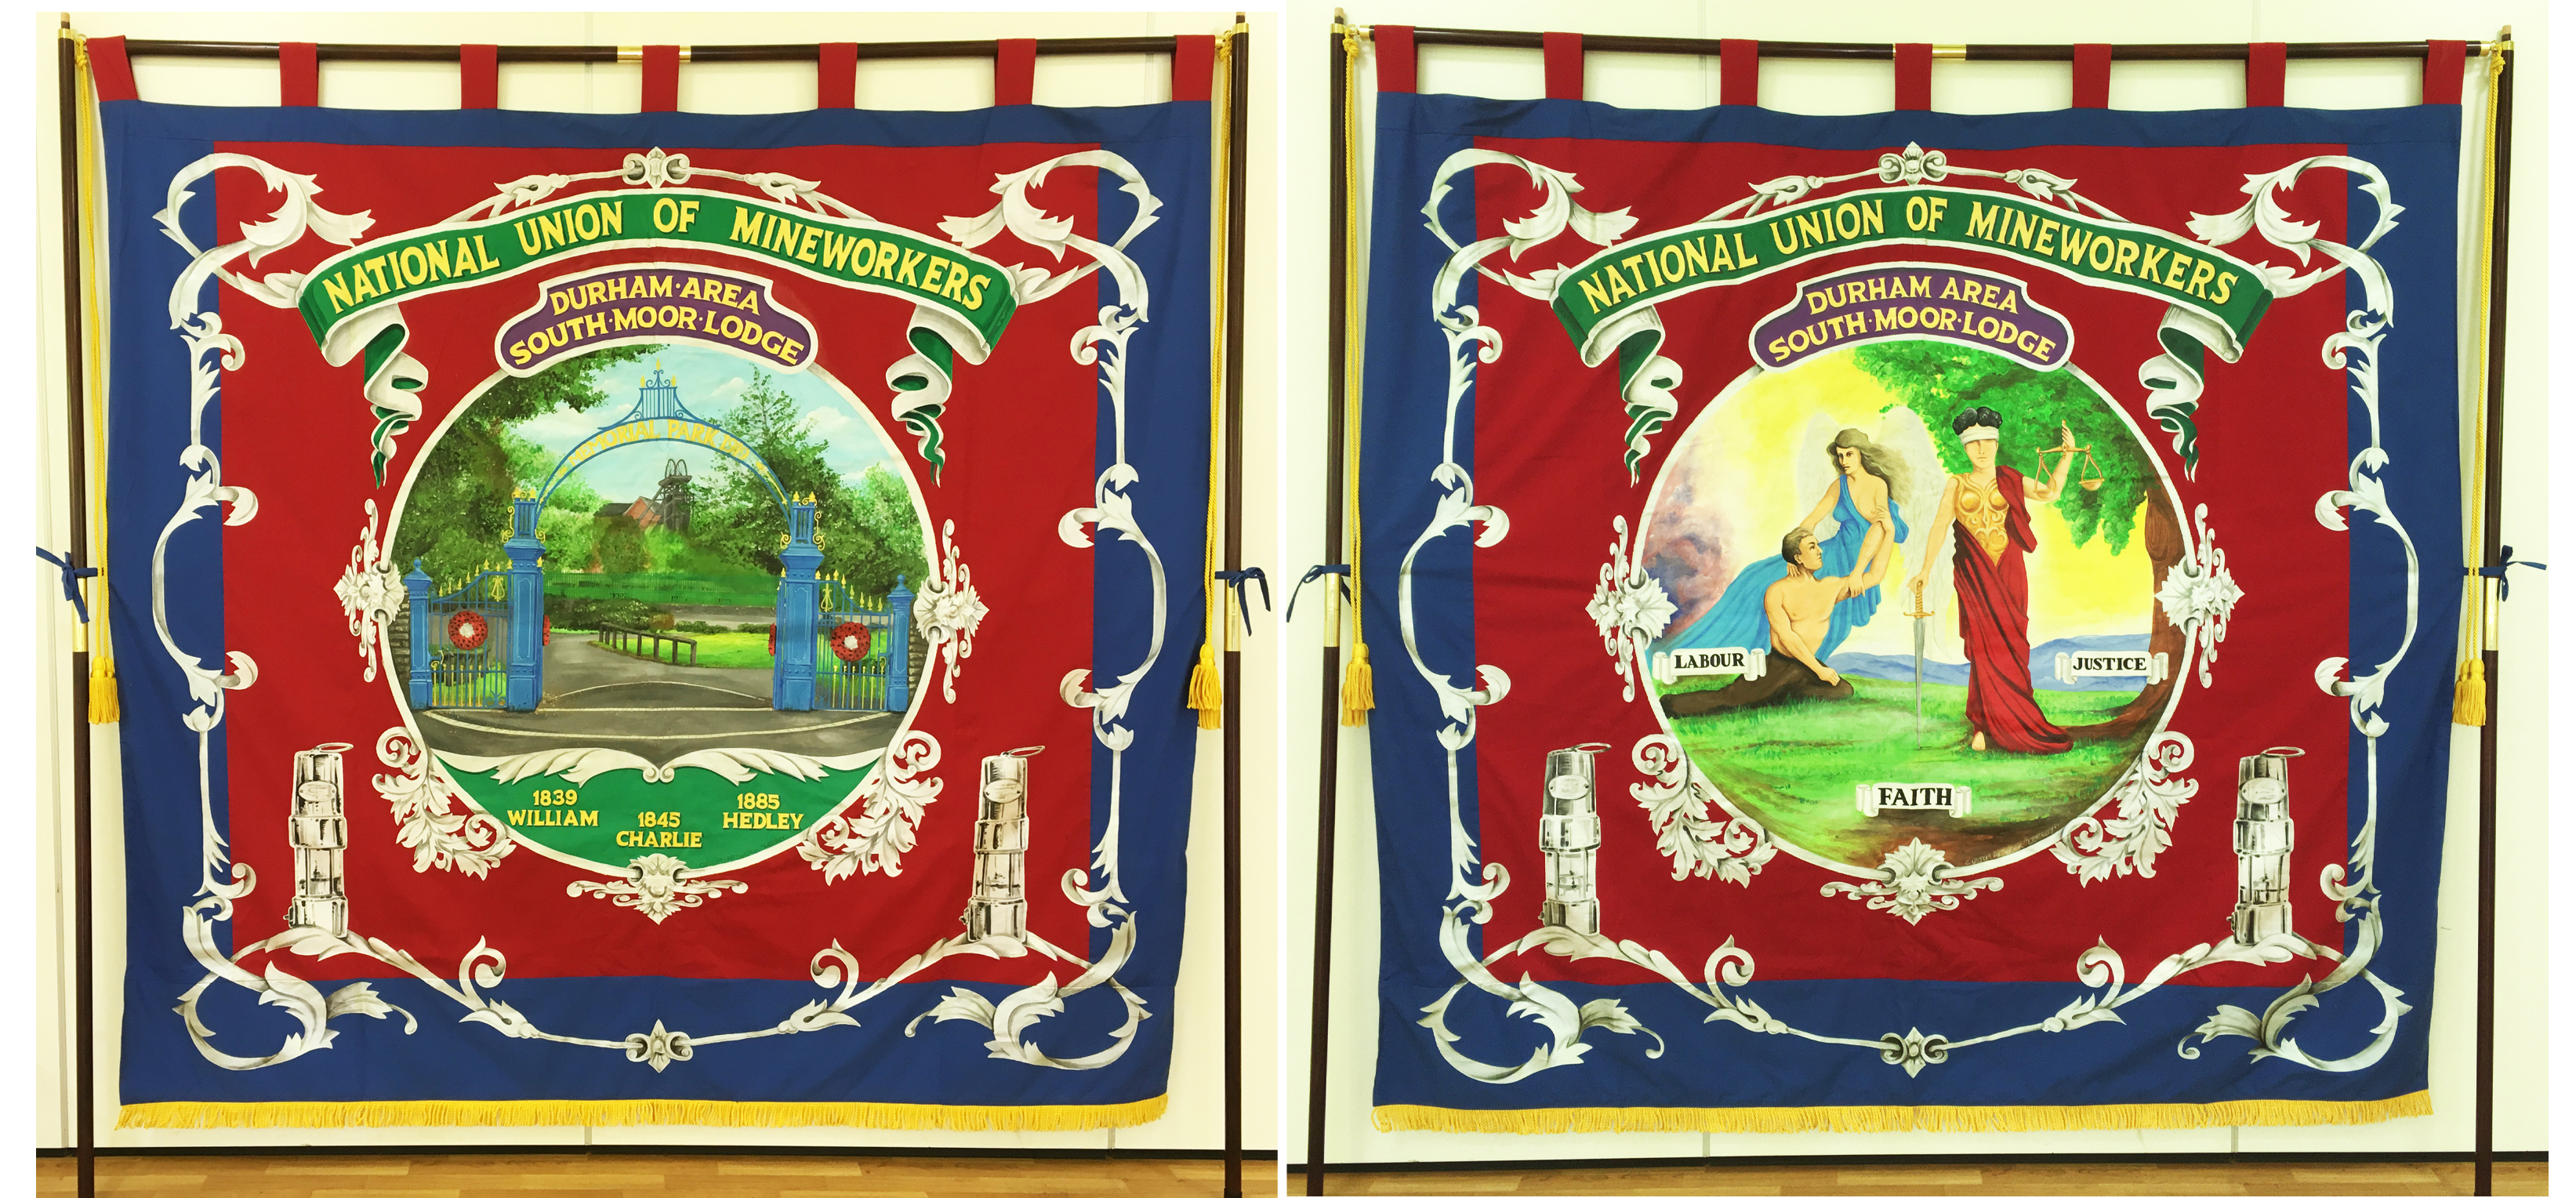 New South Moor Lodge Banner / Durham Gala 2017